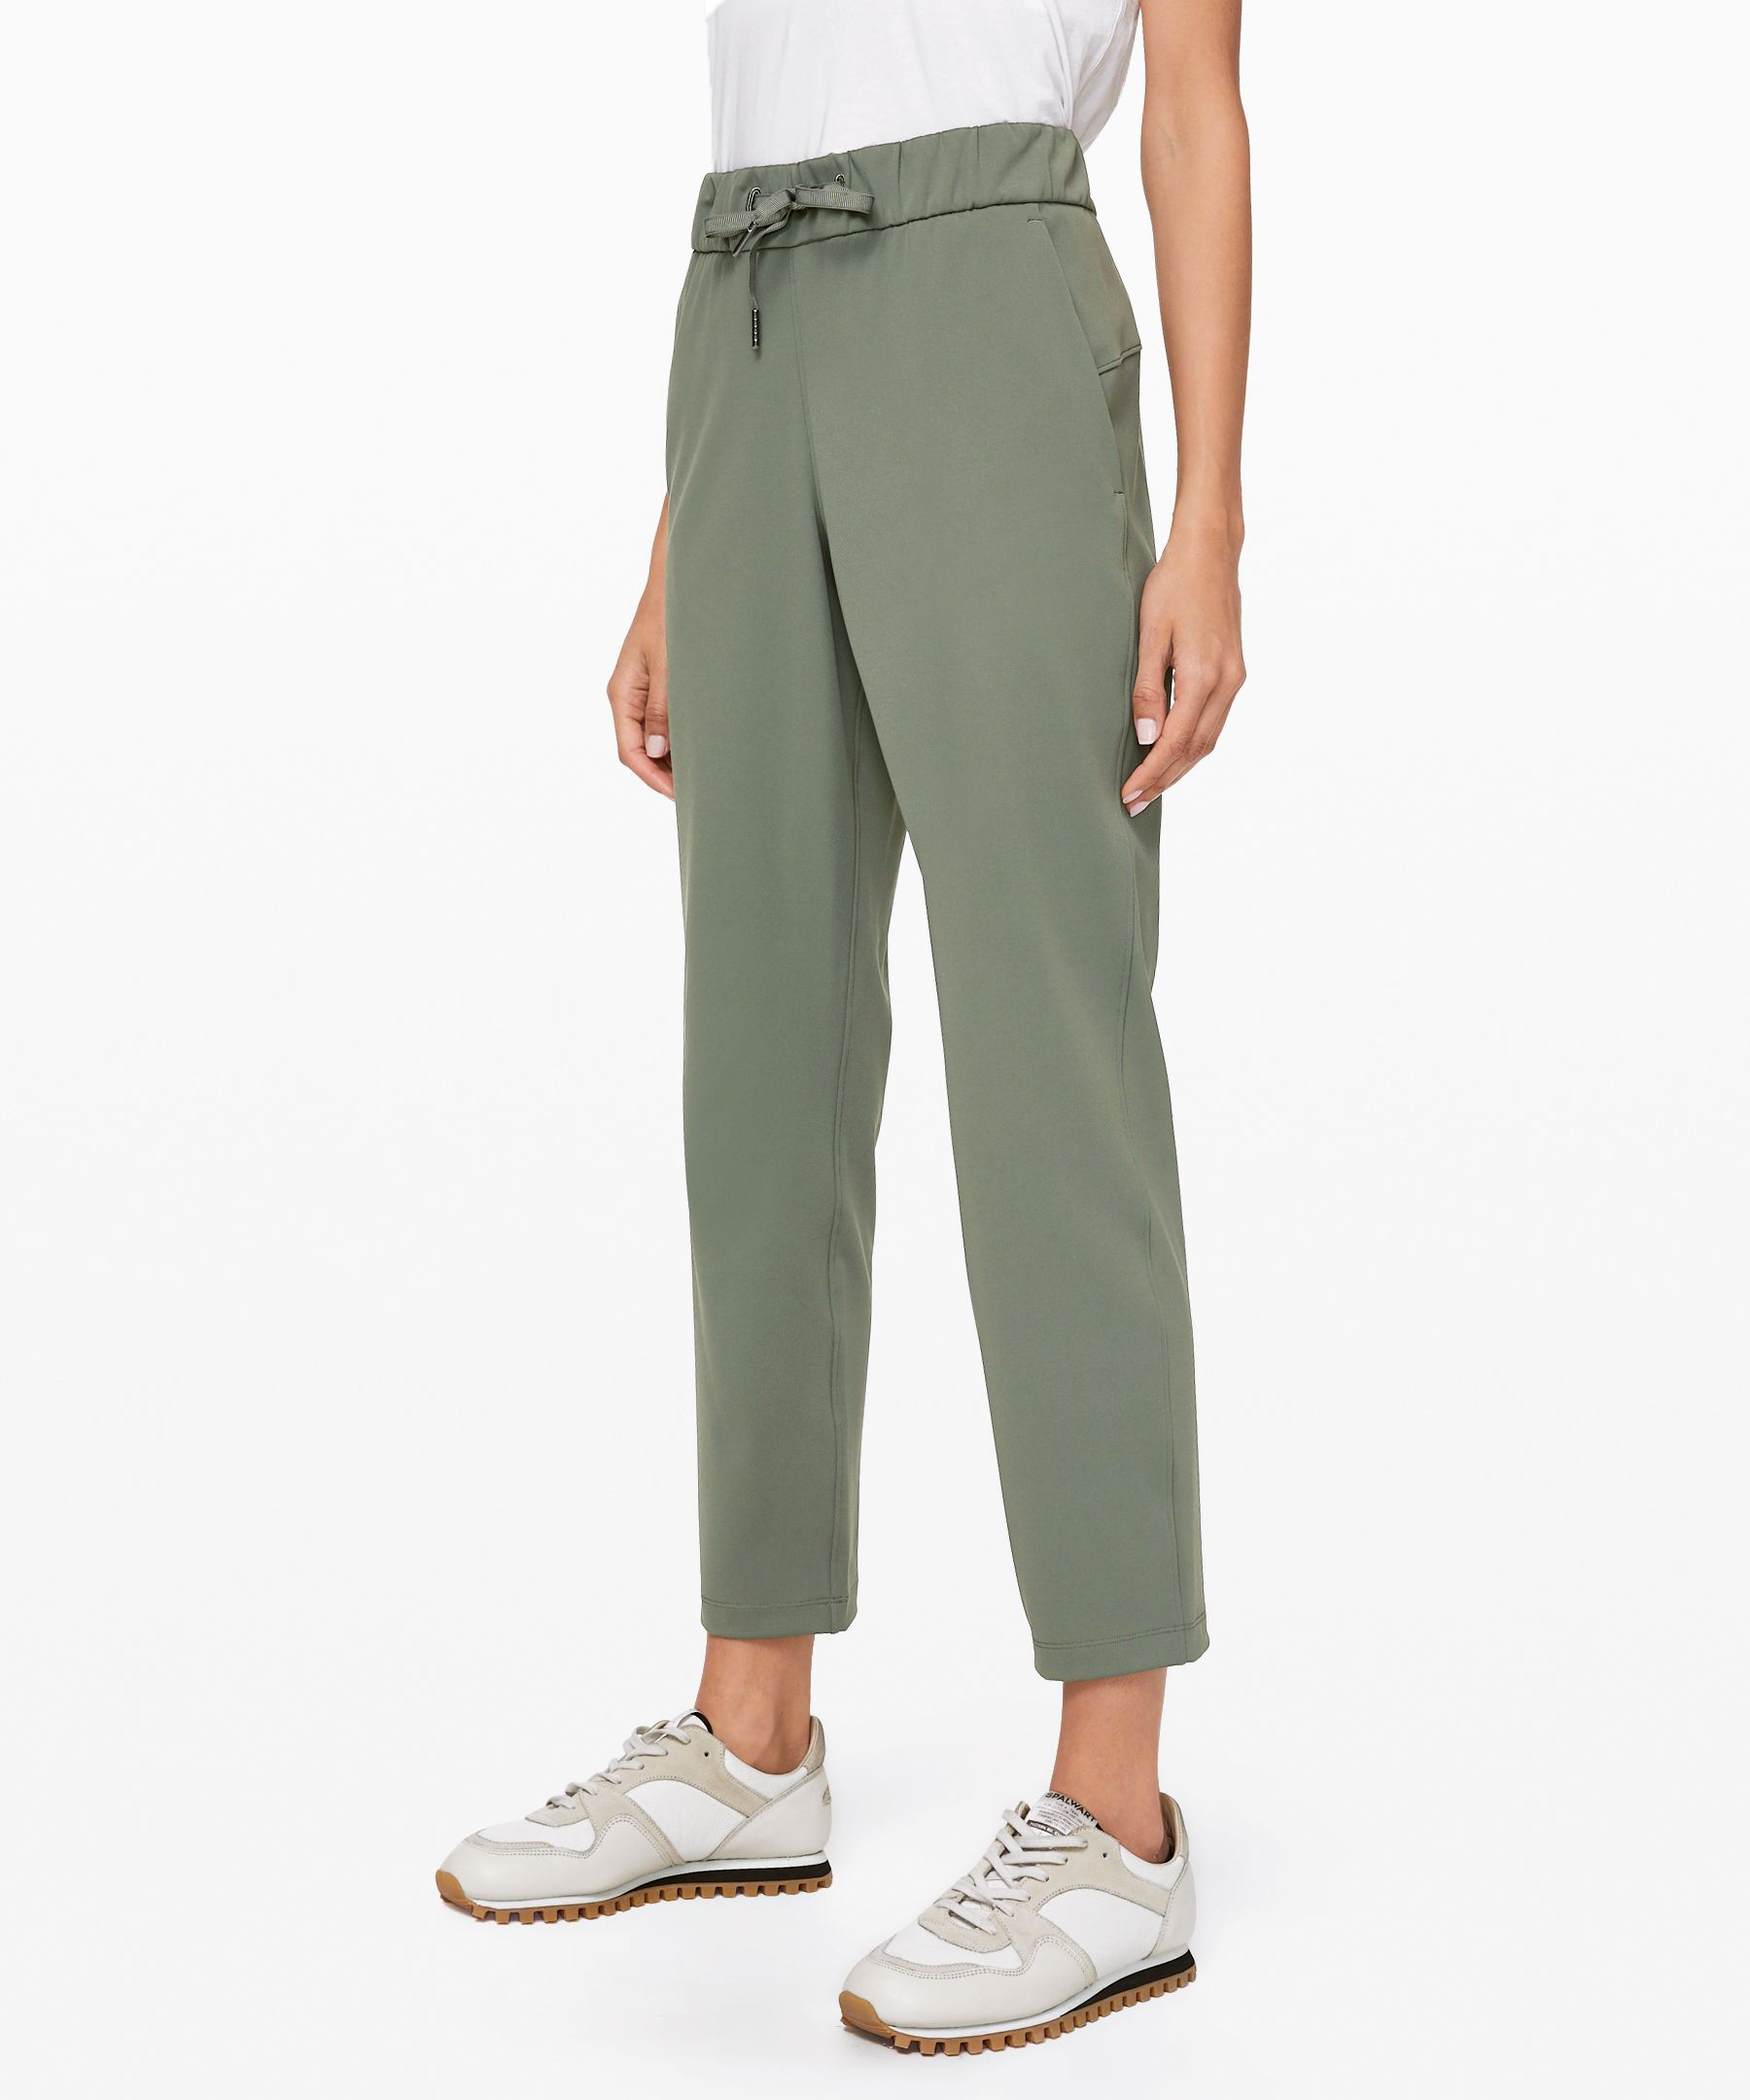 d0822b03f On the Fly 7 8 Pant